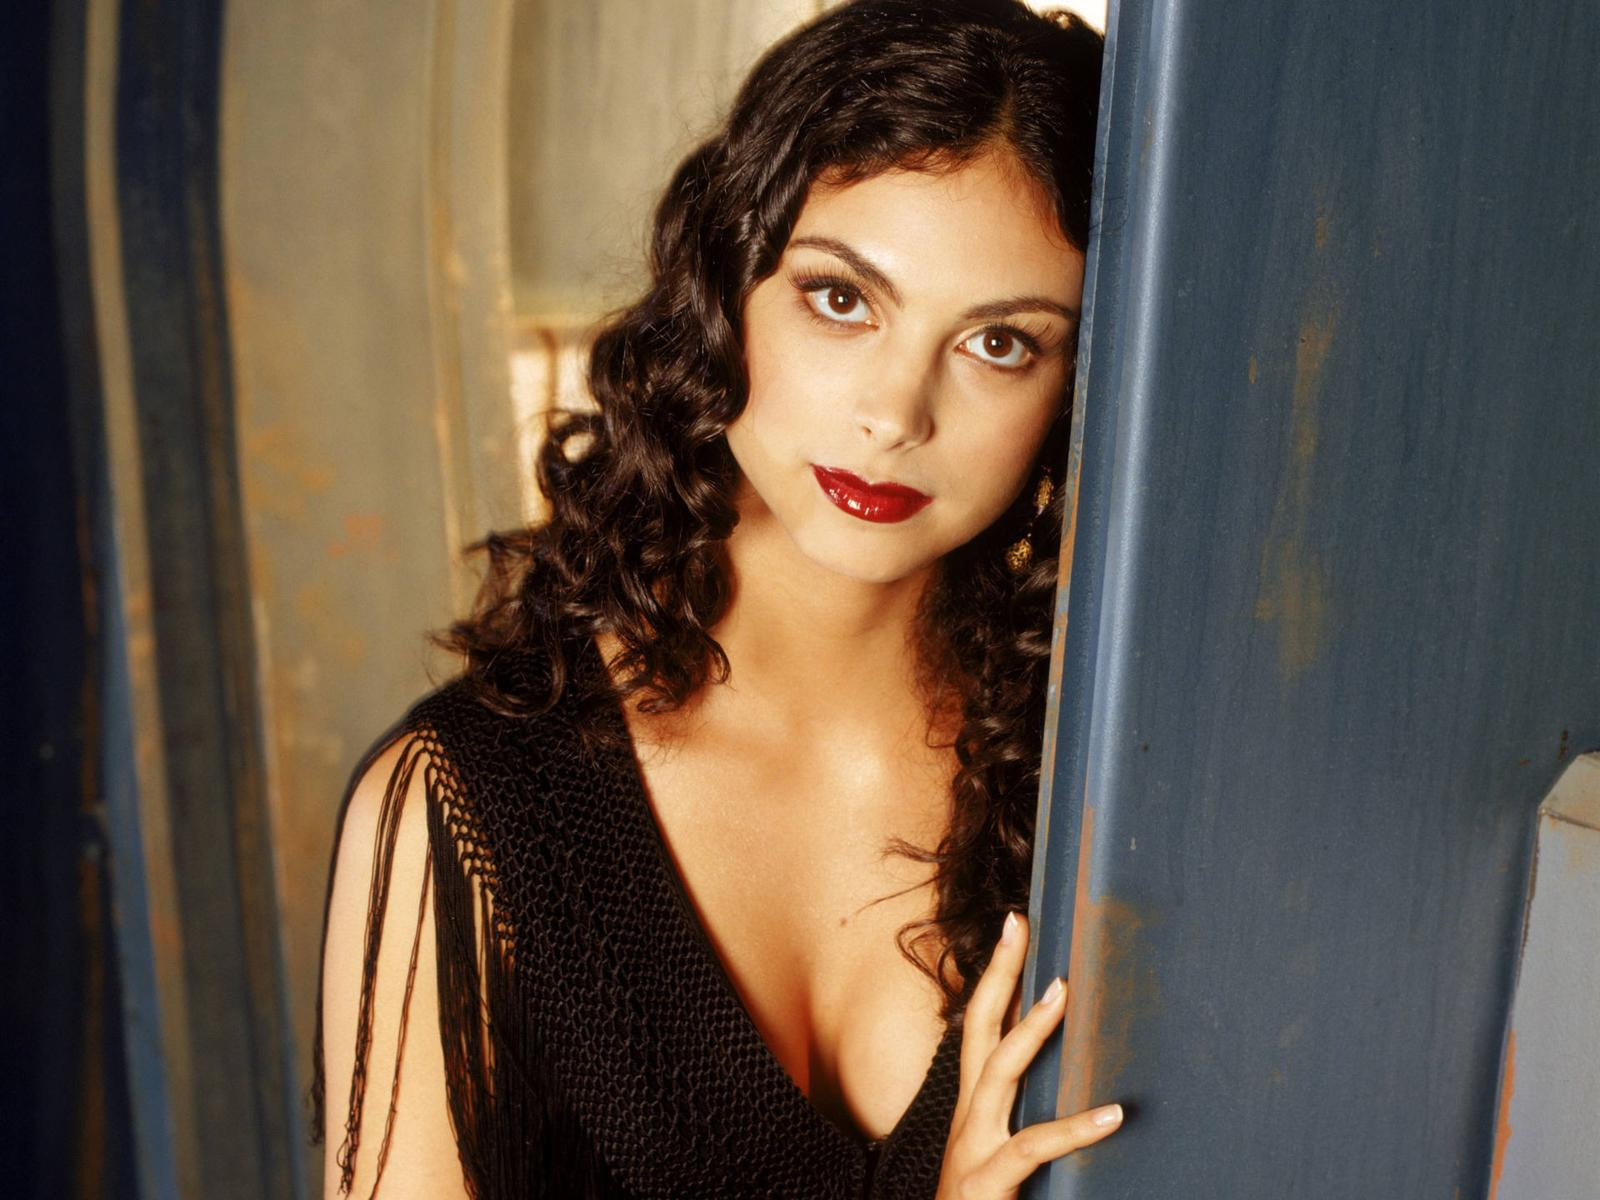 1600x1200 - Morena Baccarin Wallpapers 24